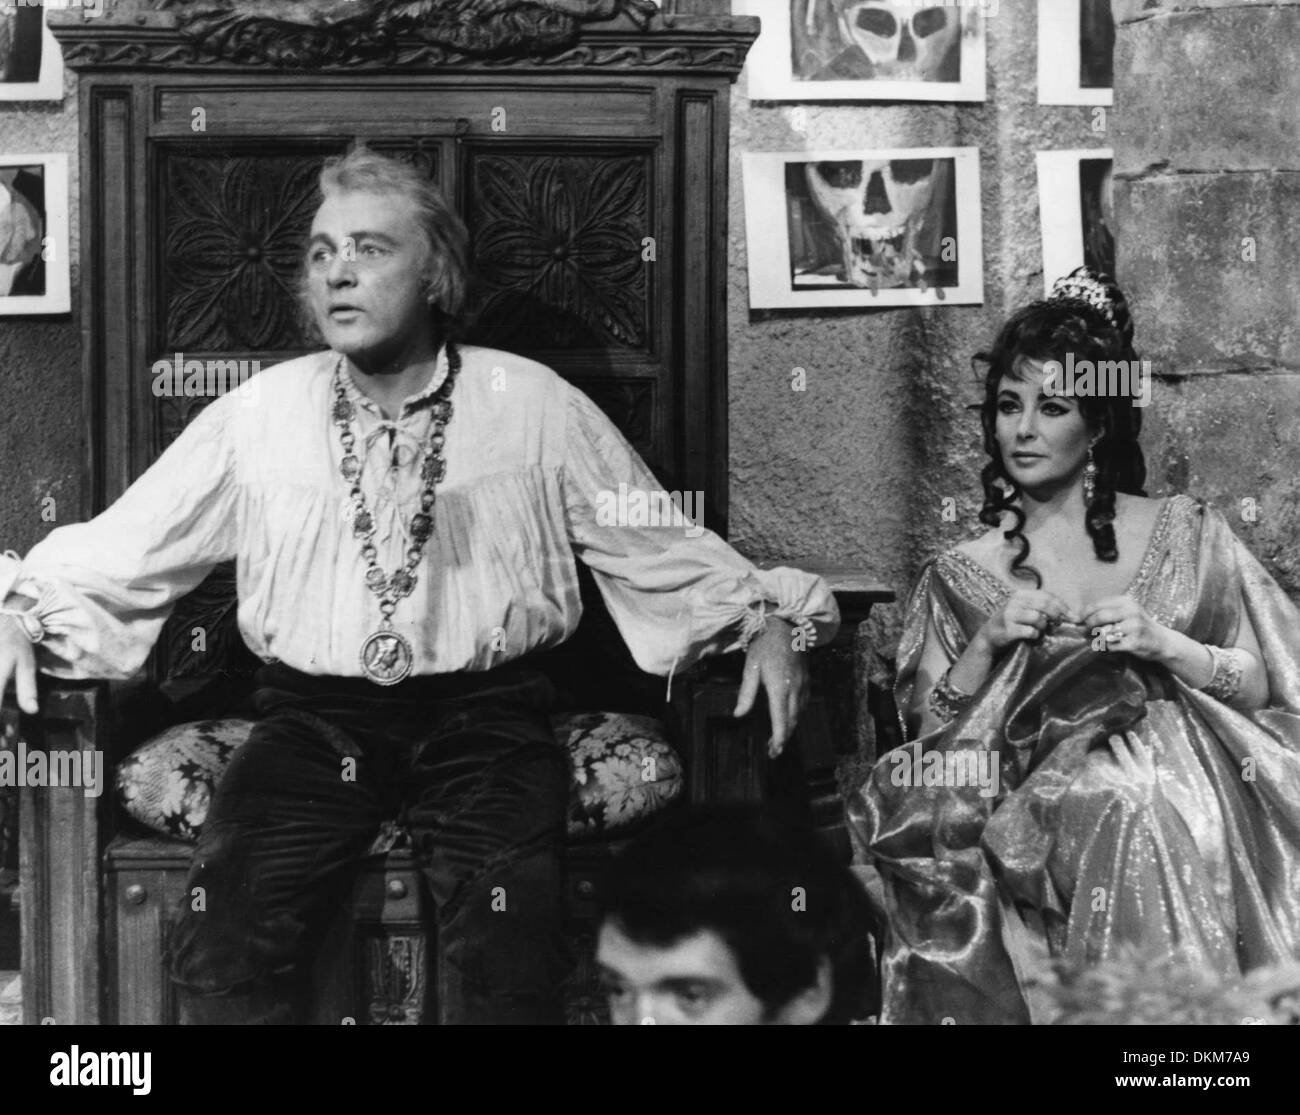 Aug. 8, 1966 - Rome, Italy - Academy Award winning actress ELIZABETH TAYLOR co-stars with her fifth husband RICHARD BURTON in the film, 'The Tragical History of Dr. Faust.' Burton will play Dr. Faust and Taylor acts as the role of Helen of Troy. (Credit Image: © KEYSTONE Pictures USA) - Stock Image